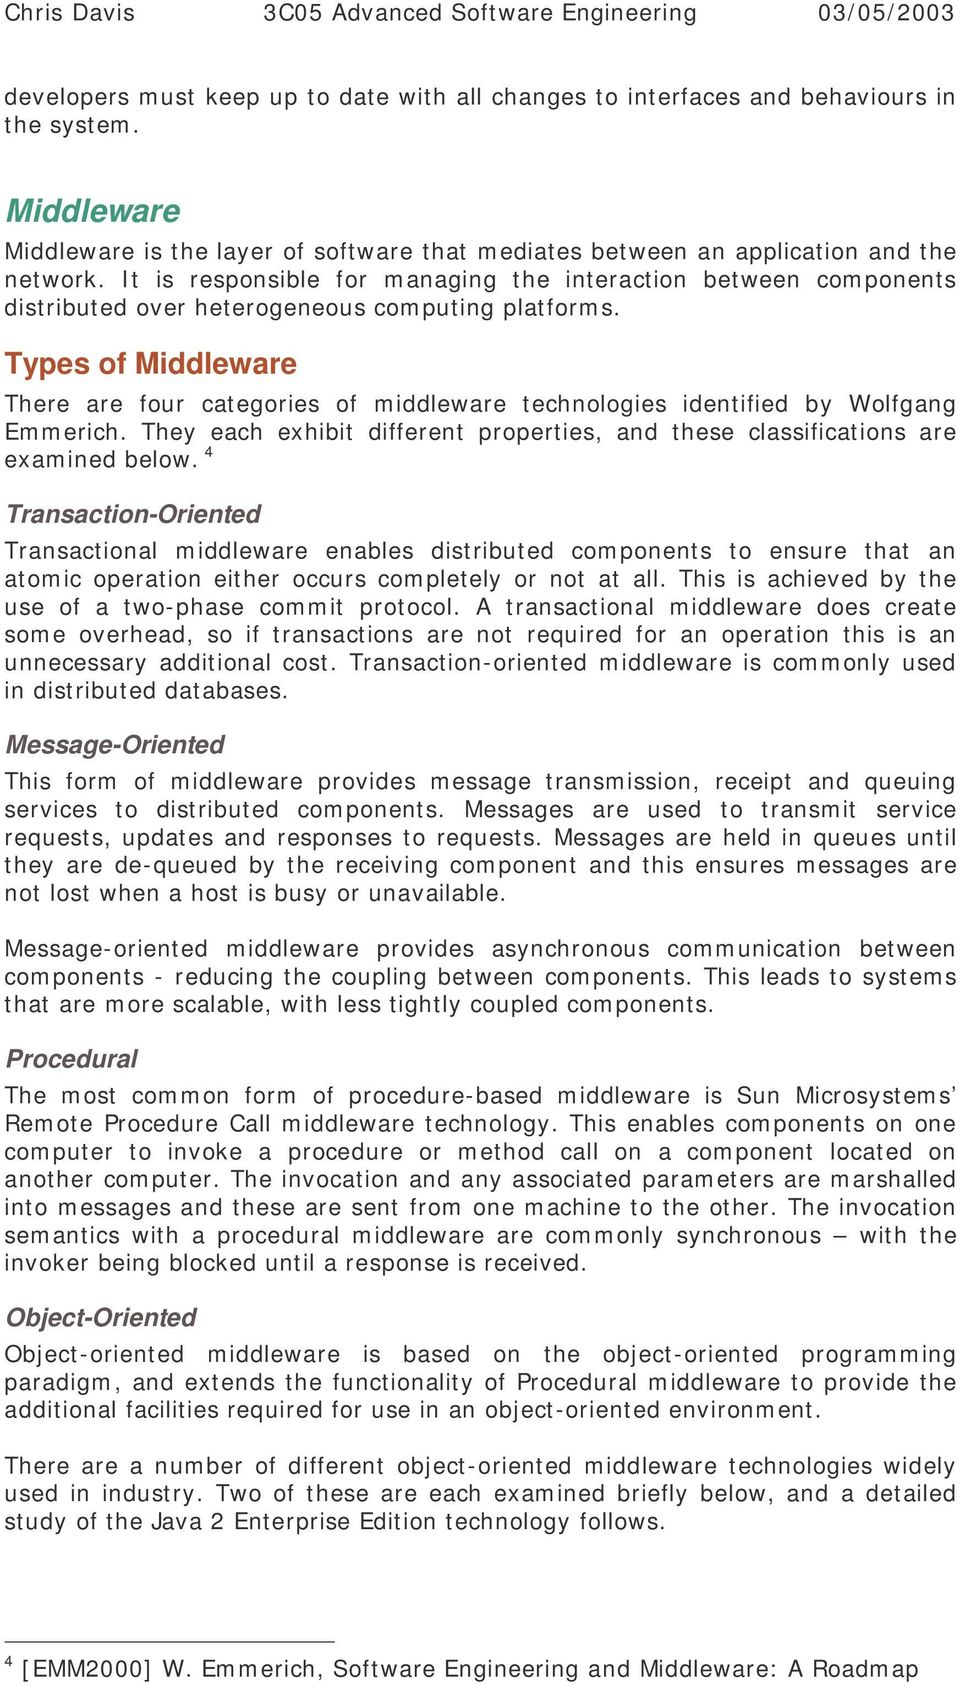 Types of Middleware There are four categories of middleware technologies identified by Wolfgang Emmerich. They each exhibit different properties, and these classifications are examined below.